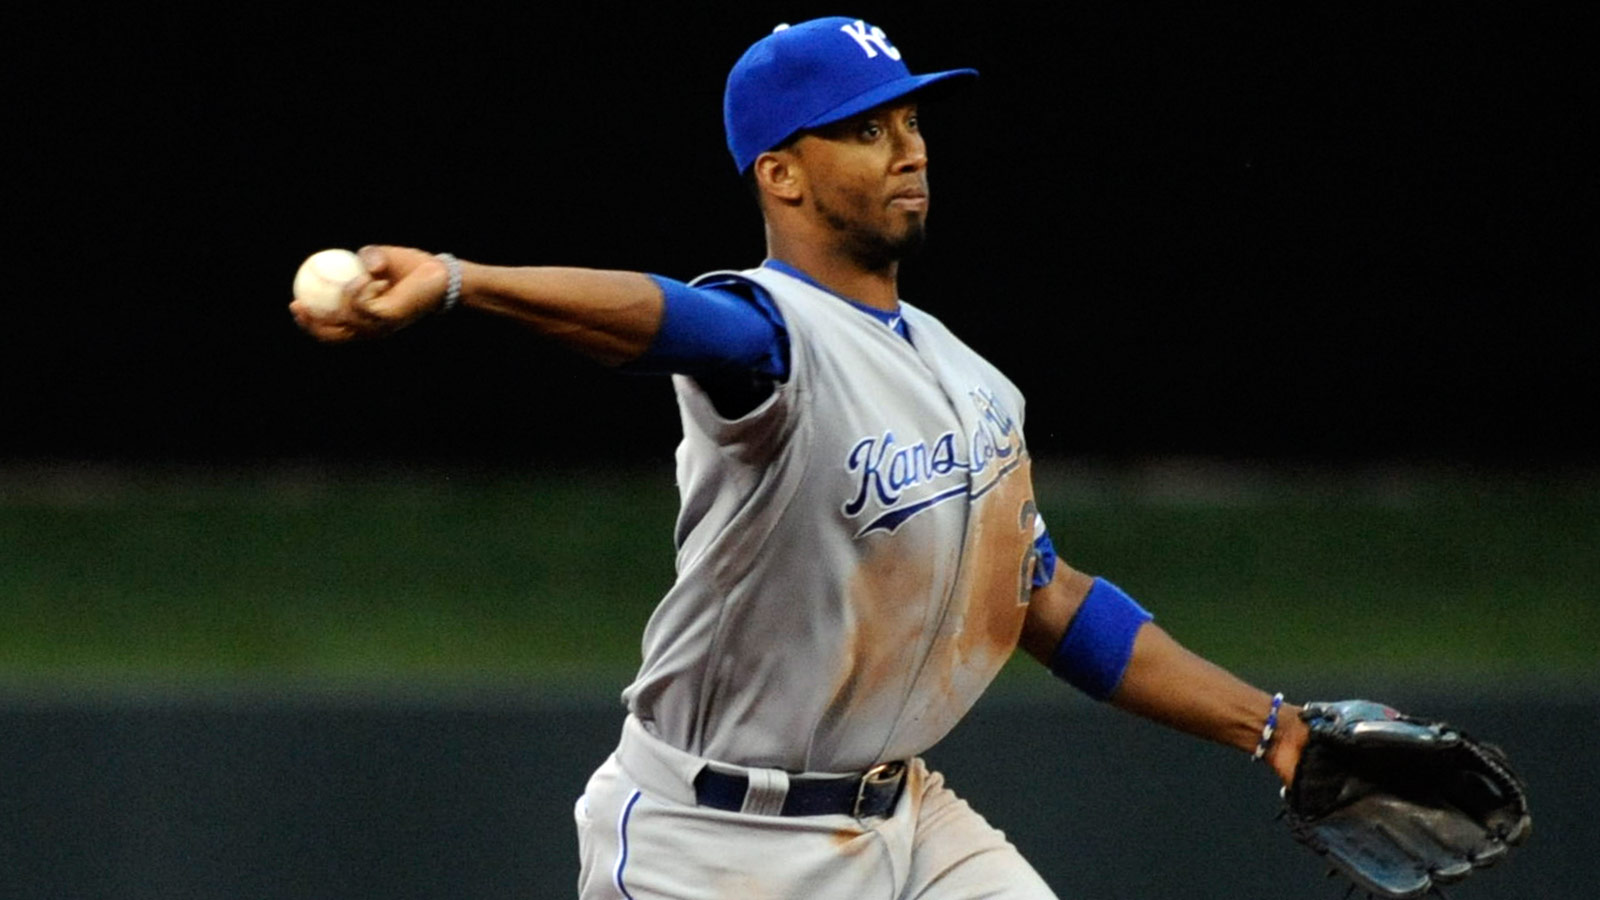 Royals kick off second half with double dip of White Sox